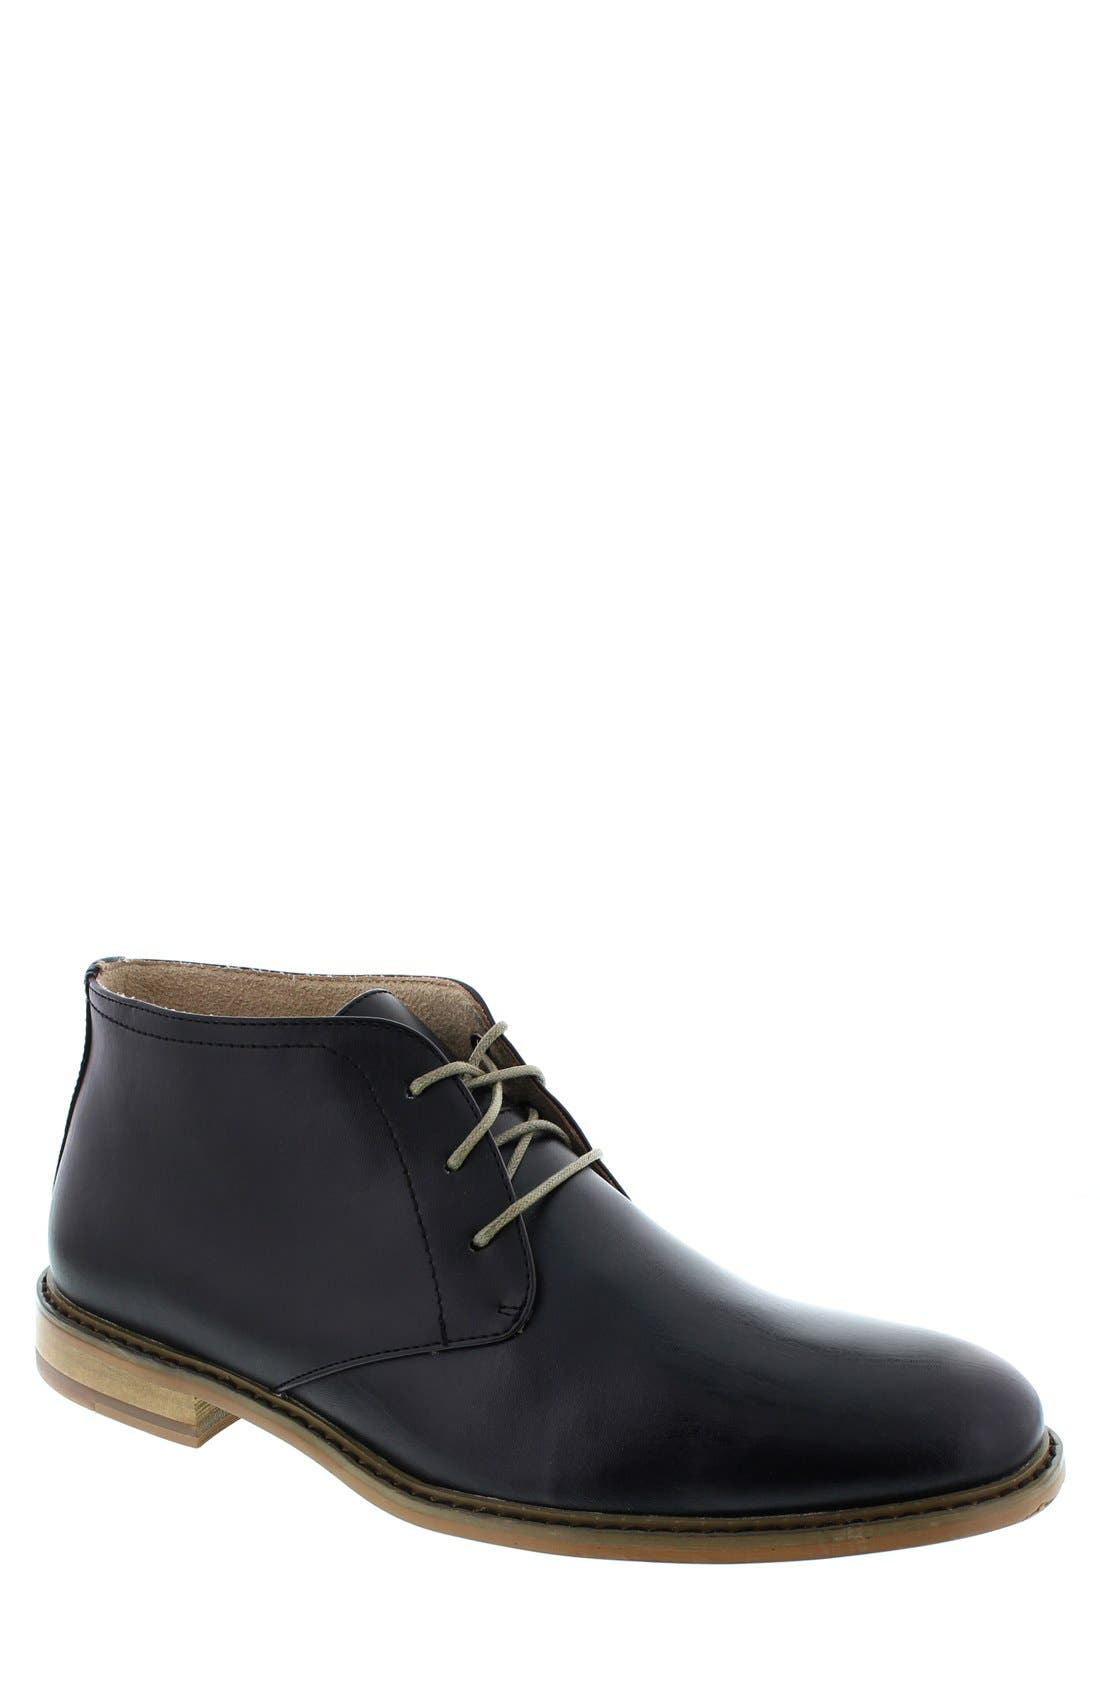 DEER STAGS,                             'Seattle' Leather Chukka Boot,                             Main thumbnail 1, color,                             001